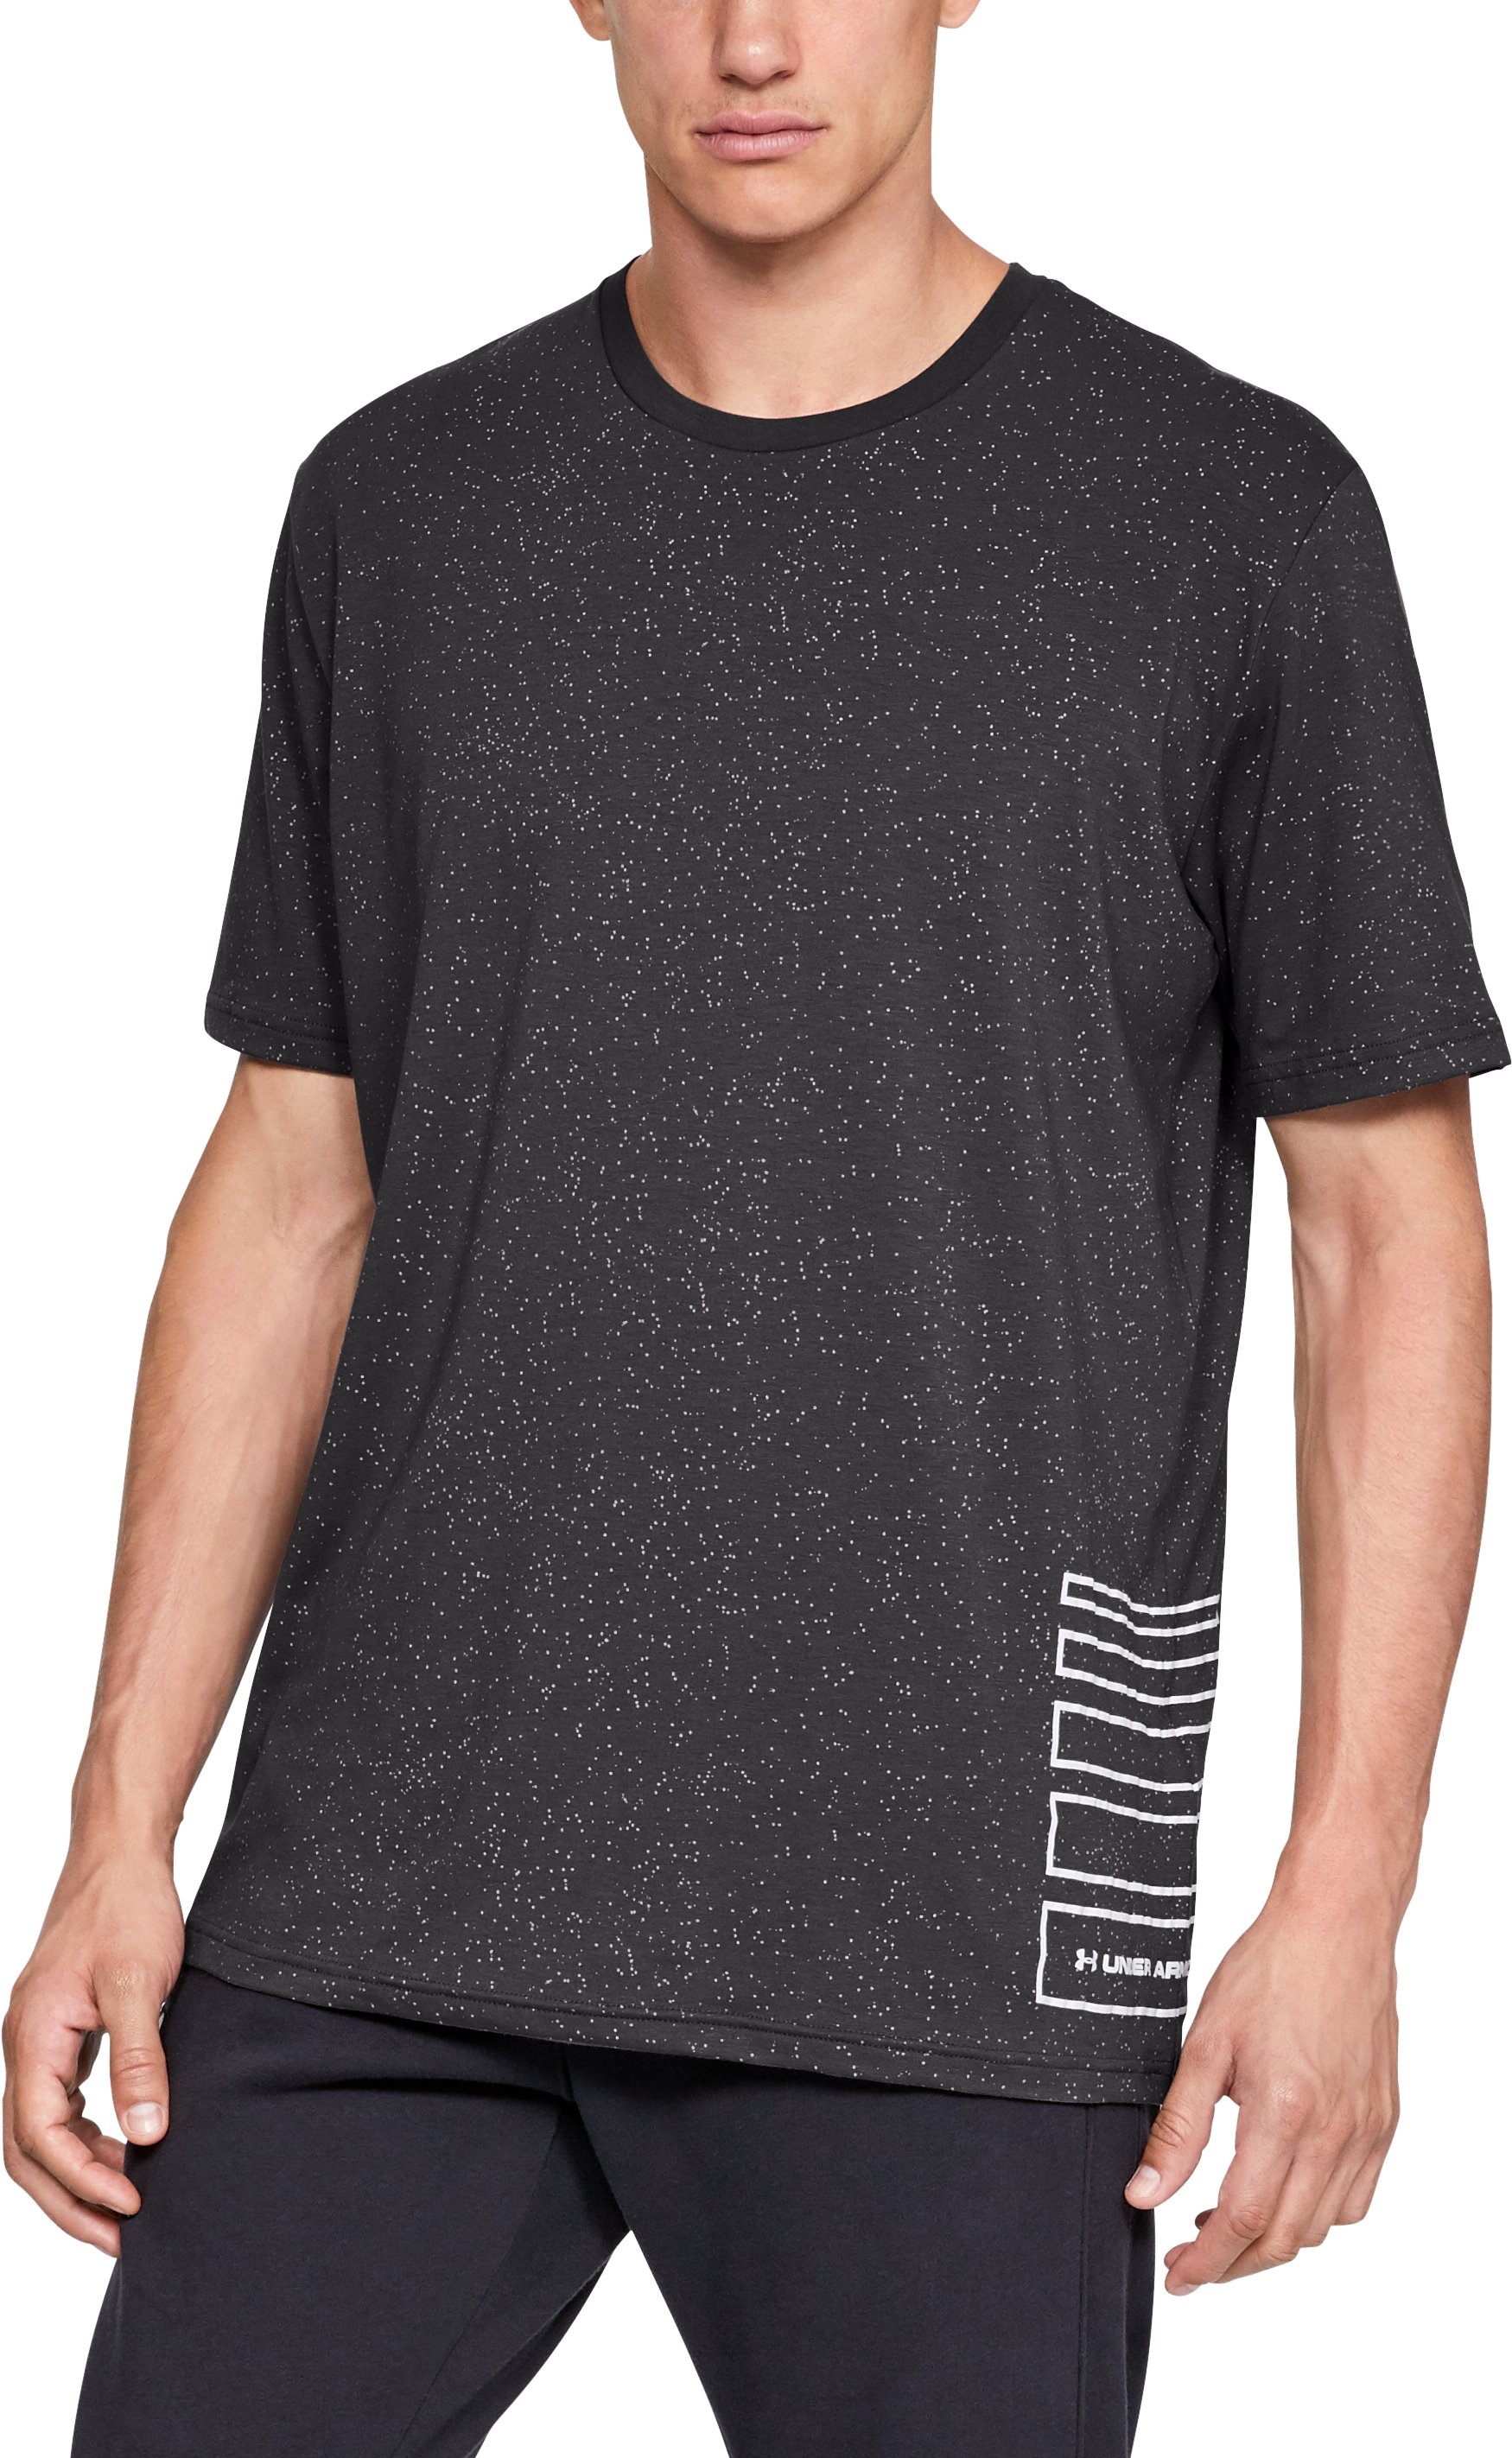 Men's UA Speckle Print Short Sleeve T-Shirt 2 Colors $35.00